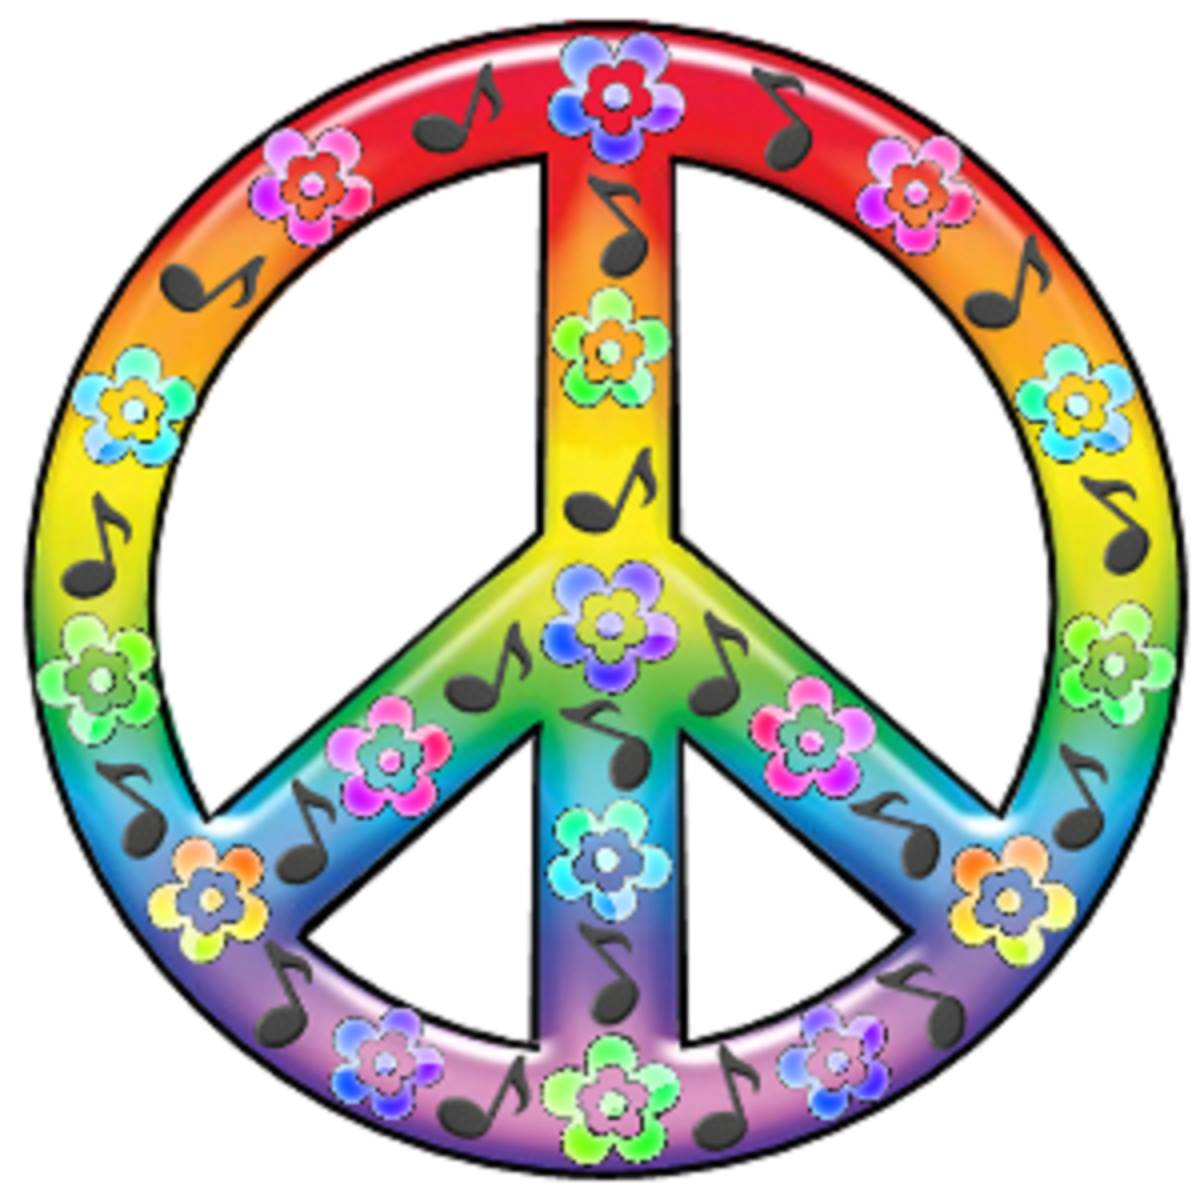 Internationally Recognized Symbol for Peace